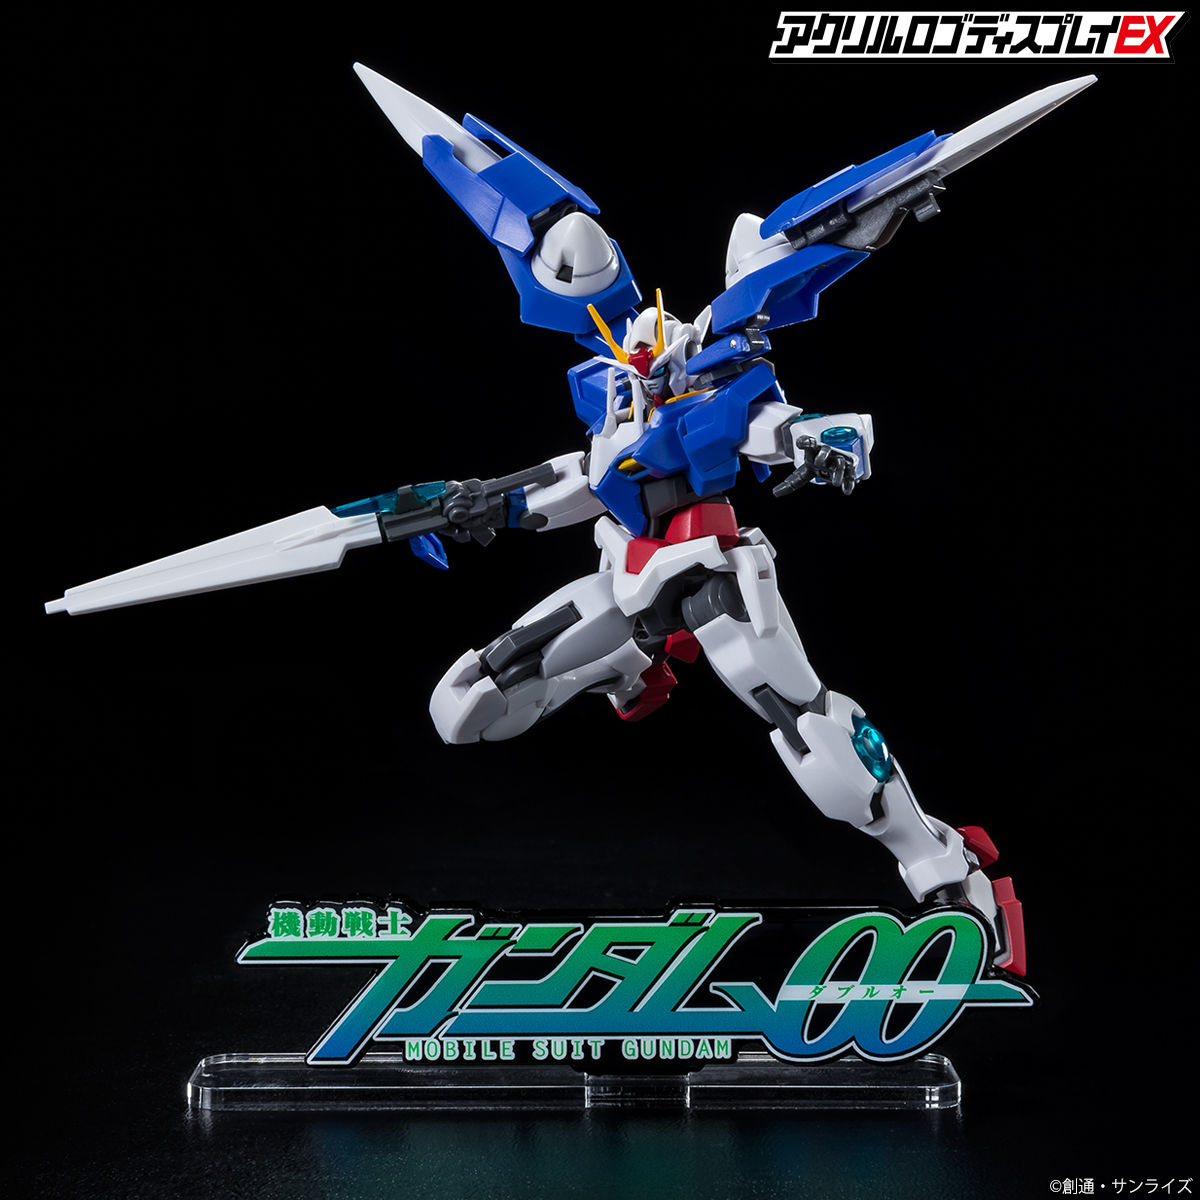 ACRYLIC LOGO DISPLAY EX 機動戰士鋼彈00